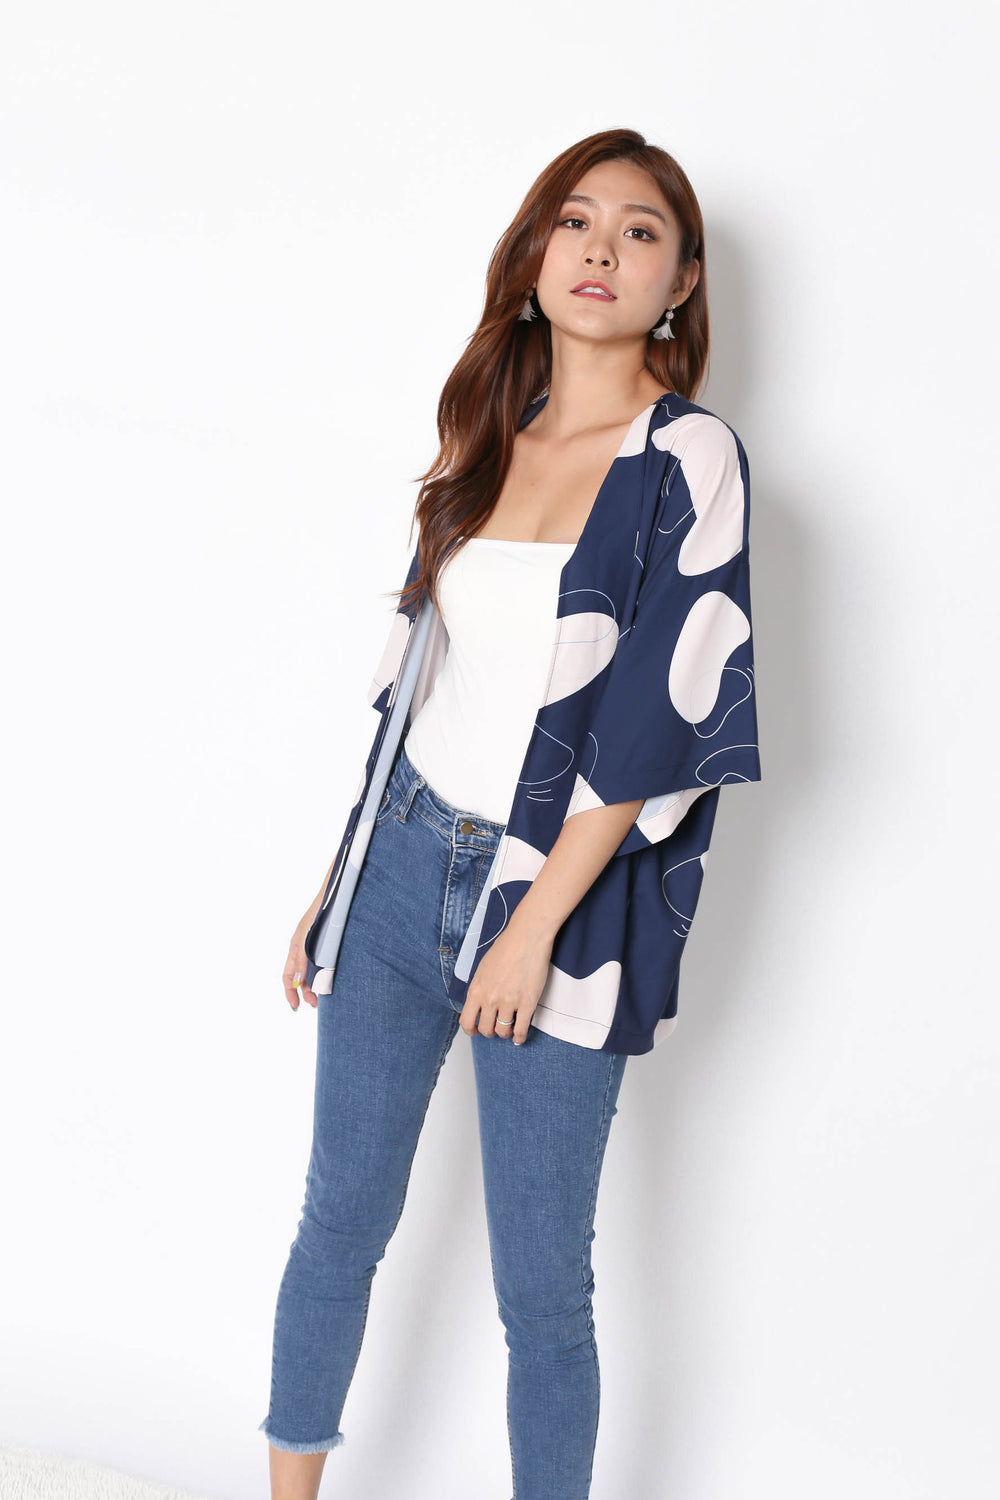 *TPZ* (PREMIUM) FELLE KIMONO ABSTRACT JACKET IN NAVY